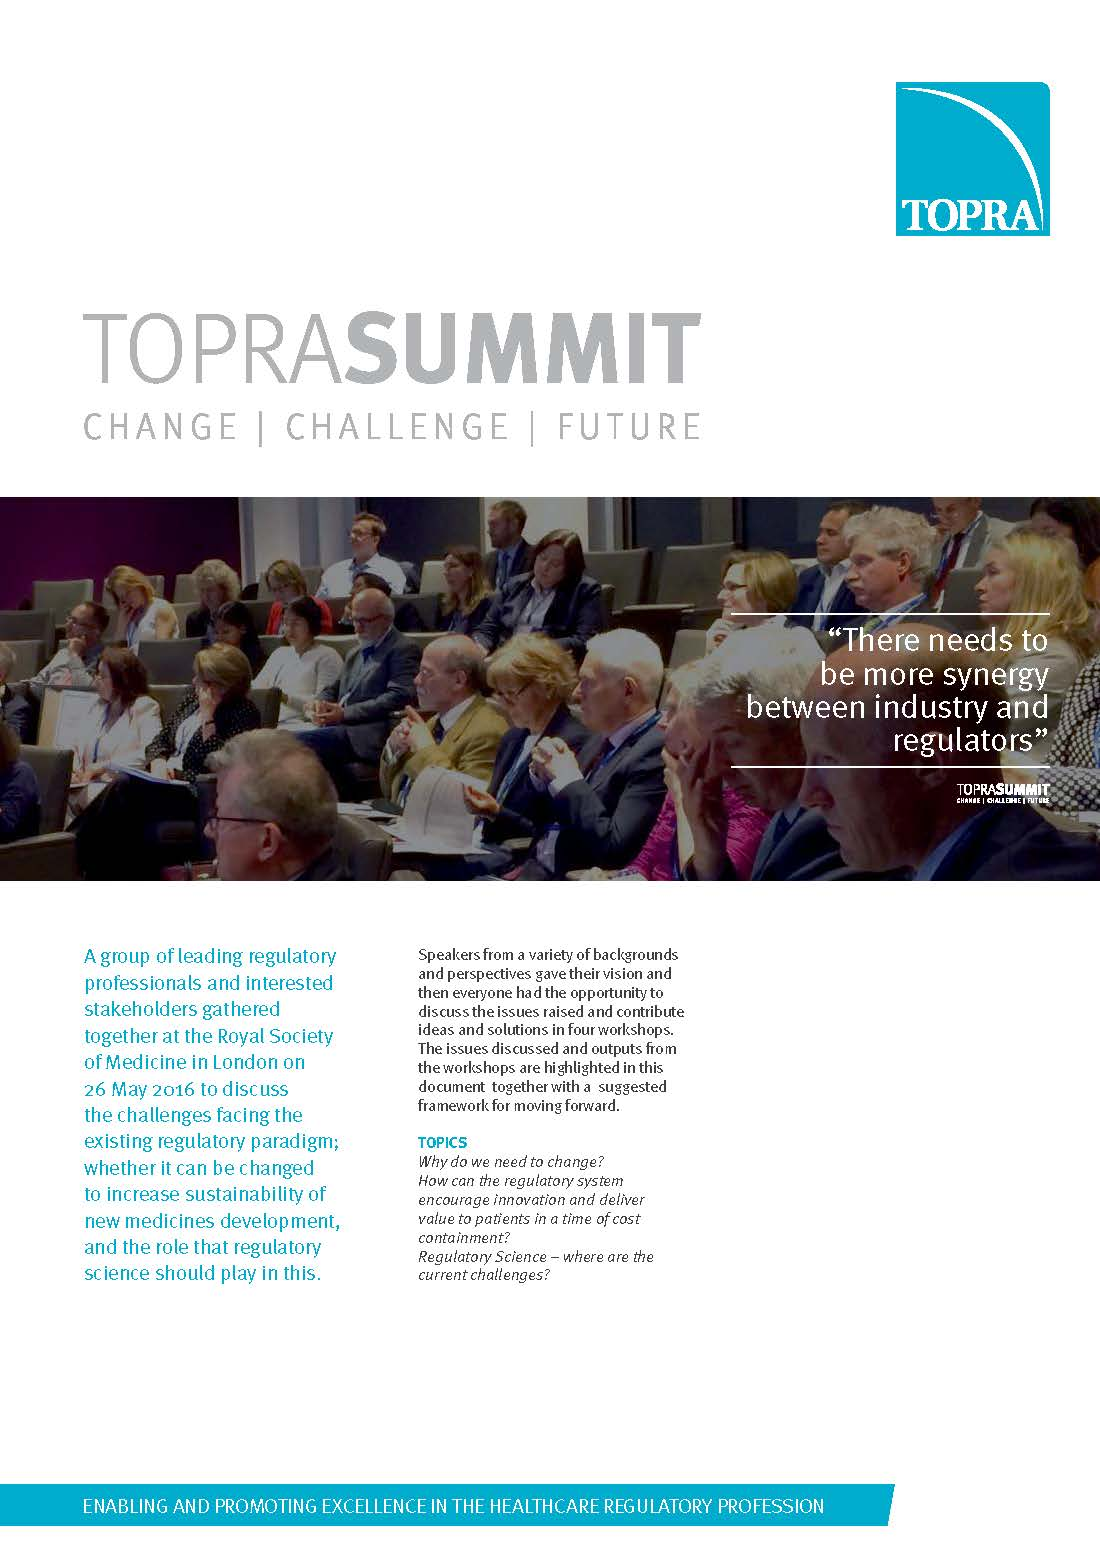 TOPRA Summit report